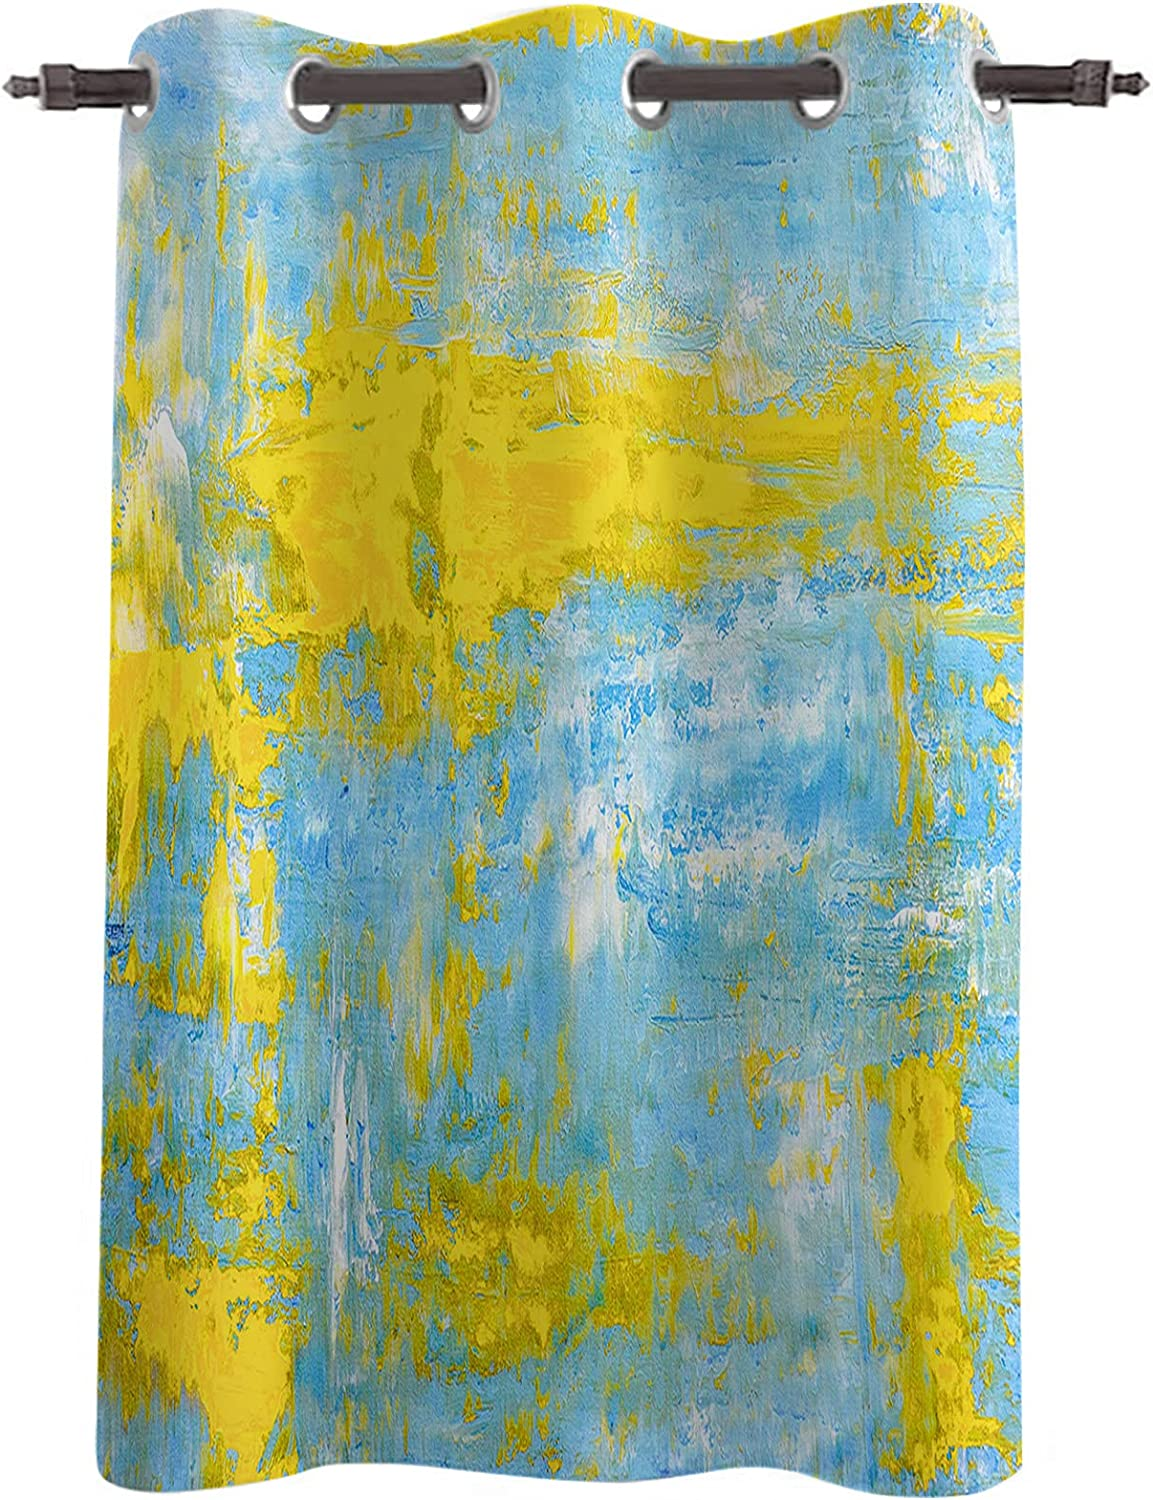 Blackout Curtains Abstract Artwork Yellow Texture 1 Max 84% Sale Special Price OFF Pan Painting